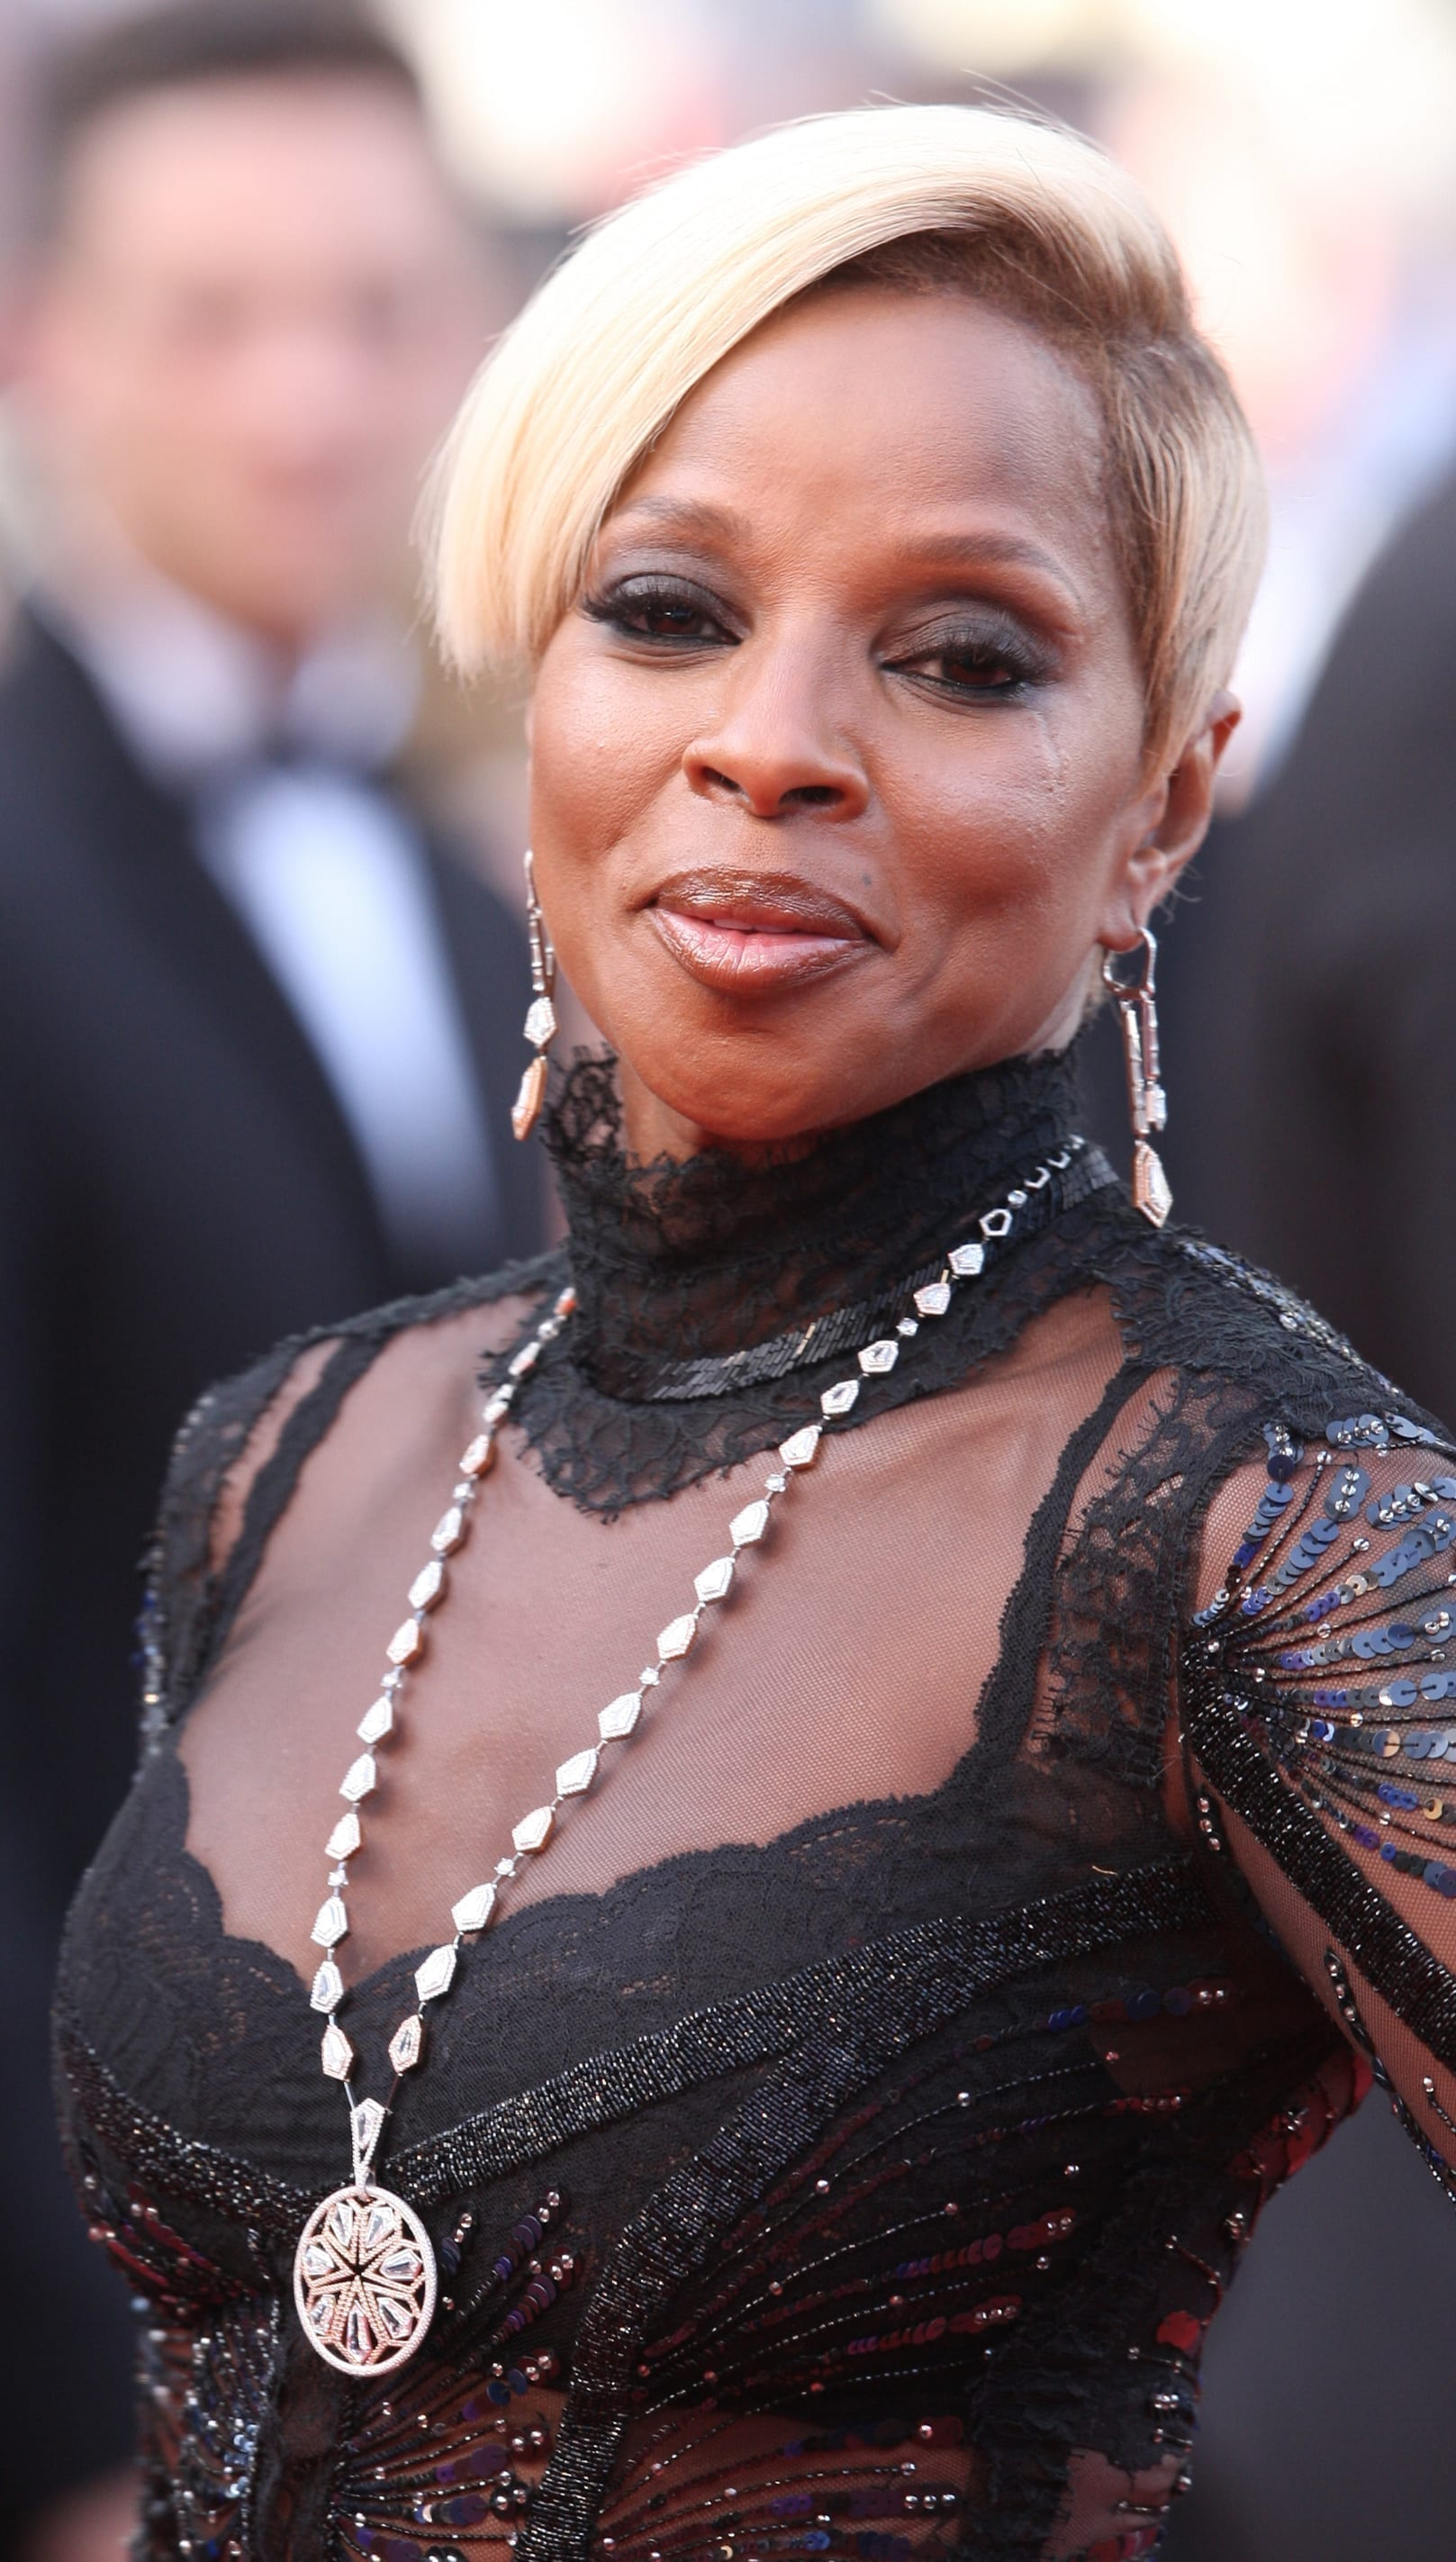 Mary J. Blige's Undercut with Side-Swept Top